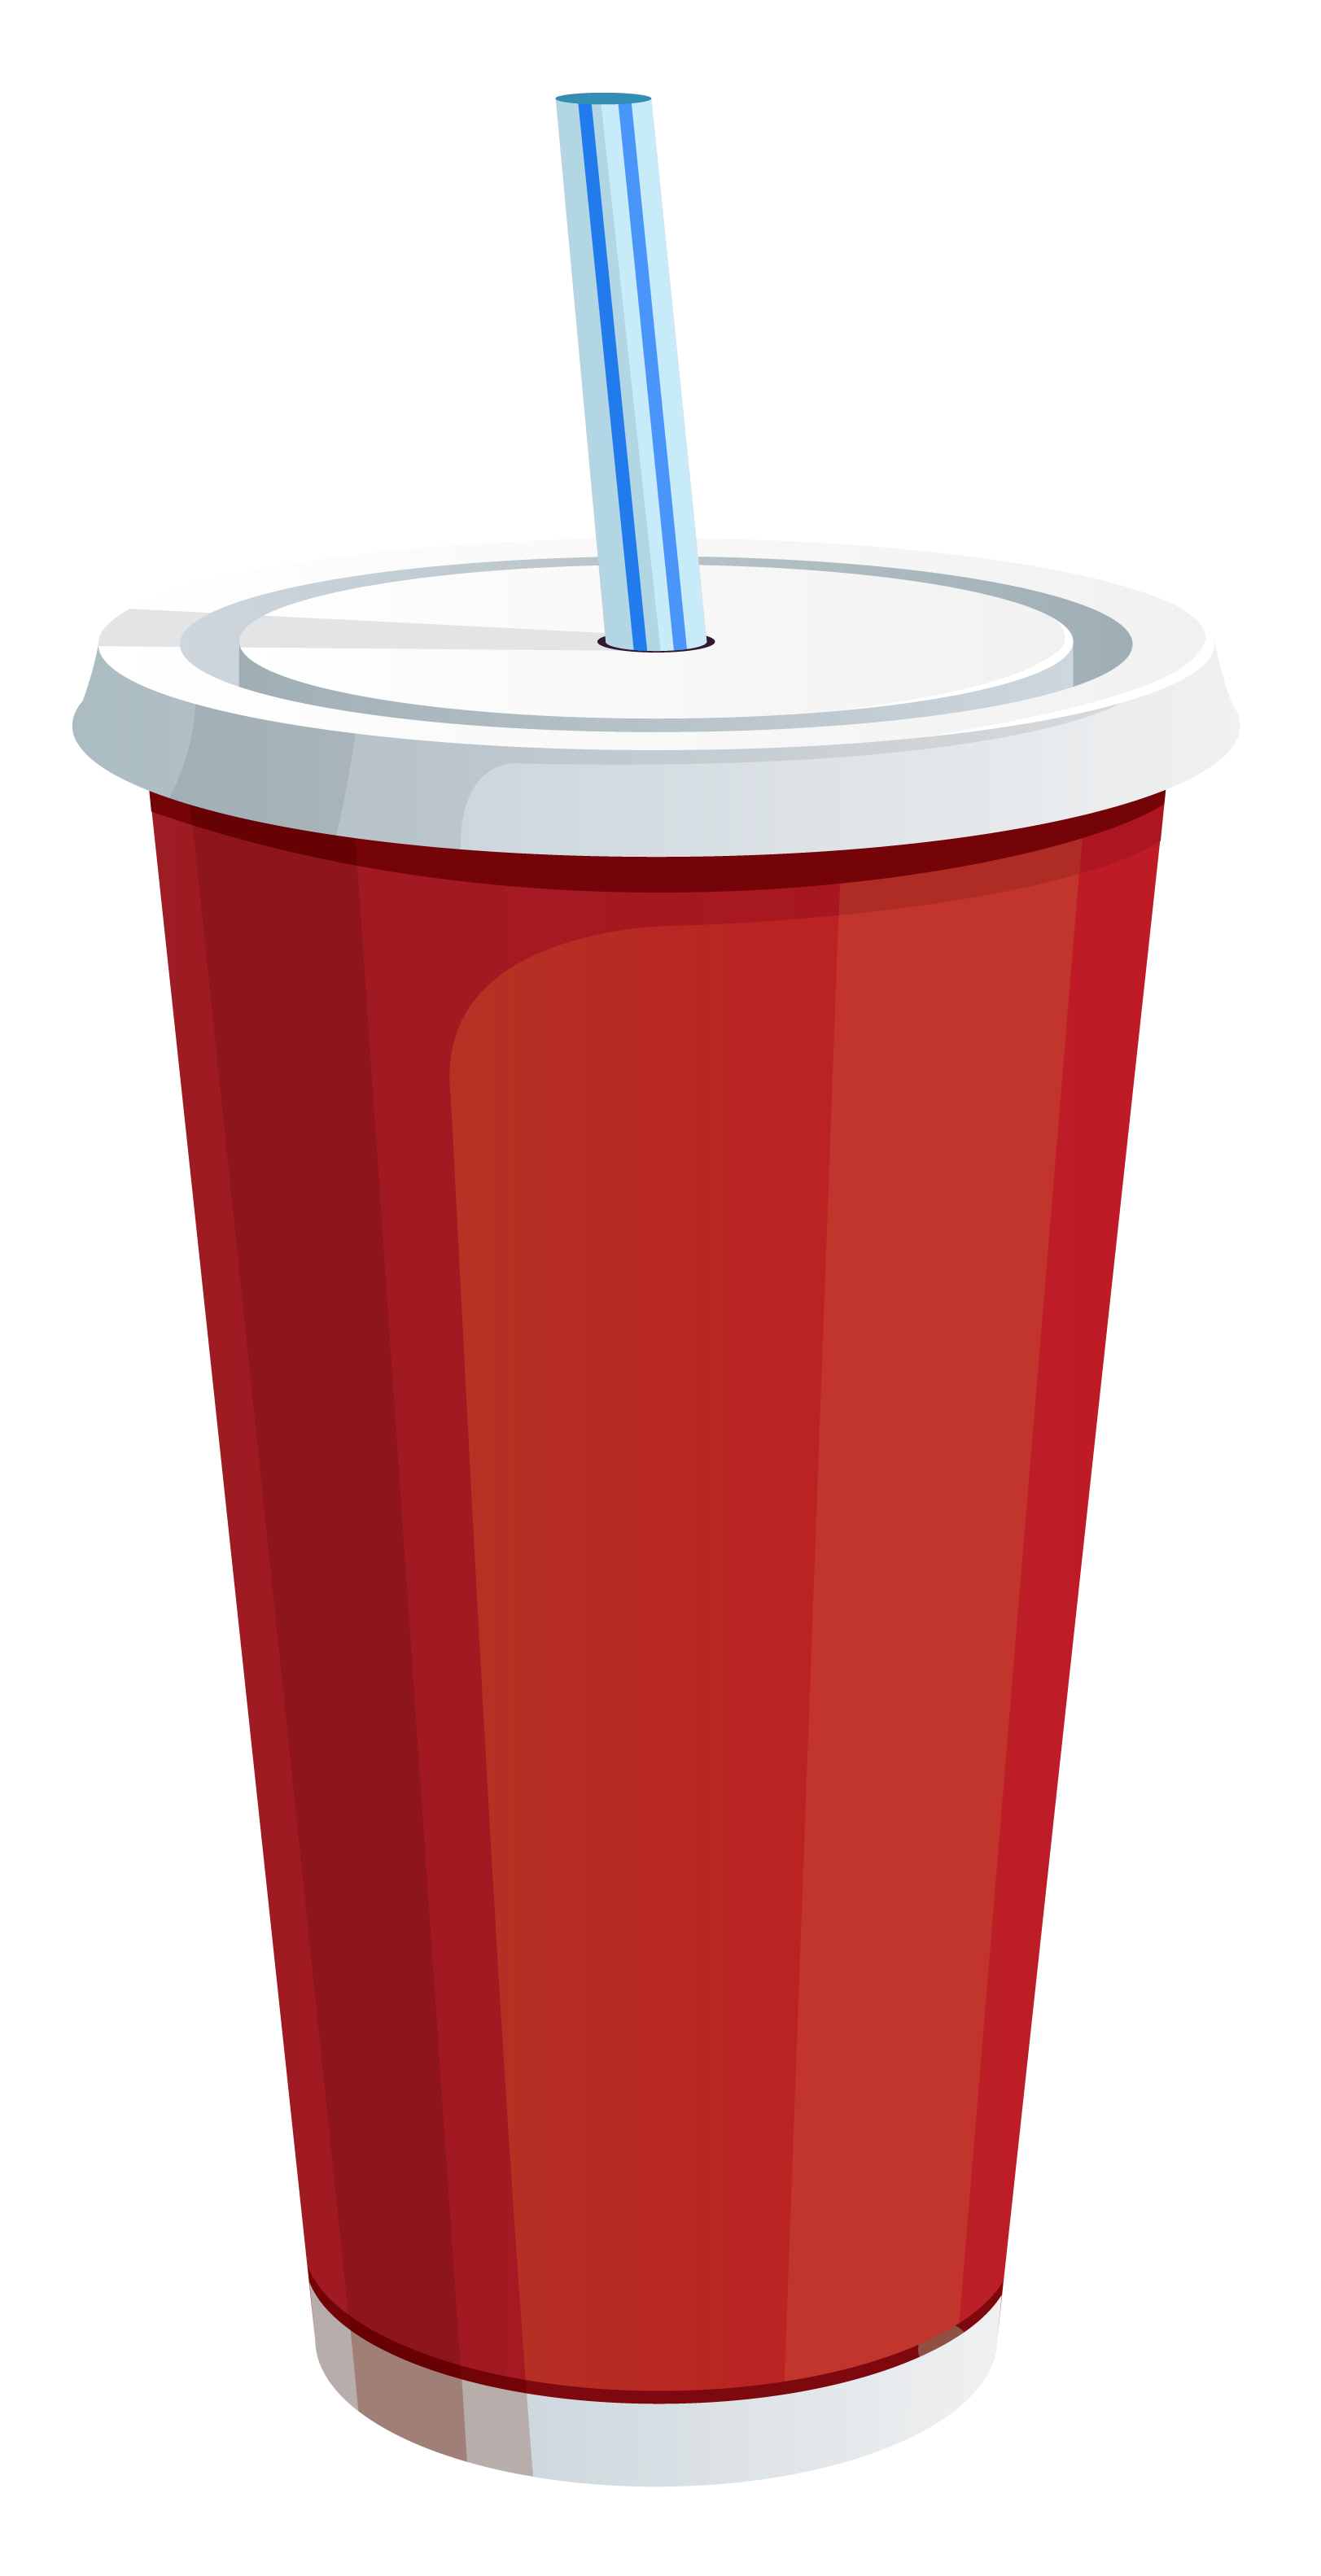 Beat plastic pollution welcome. Cup clipart disposable cup